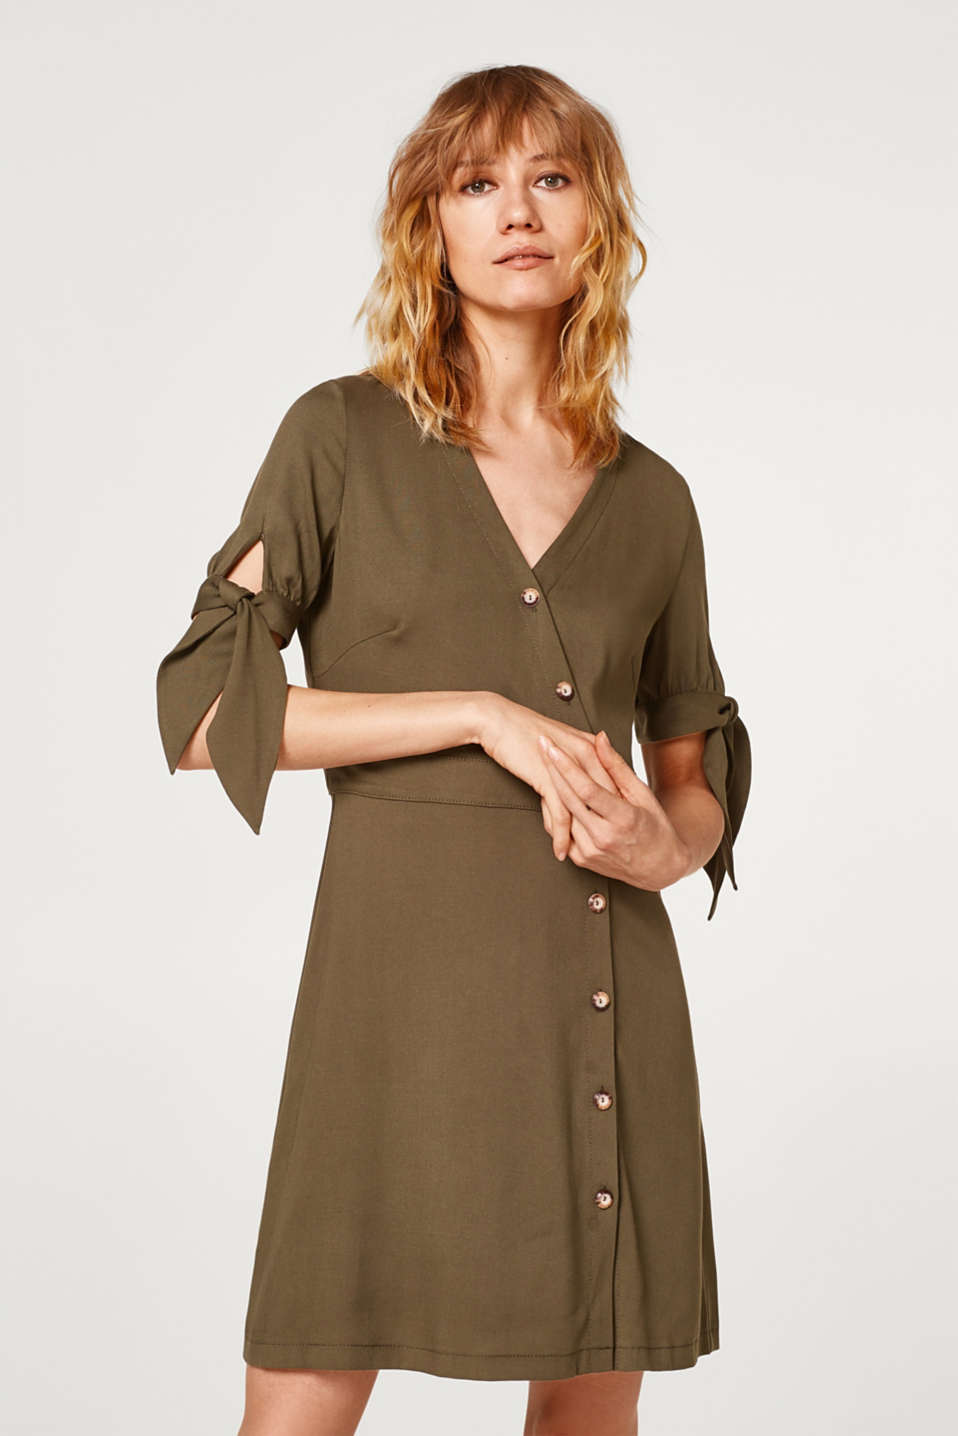 Esprit - Dress with a diagonal button placket